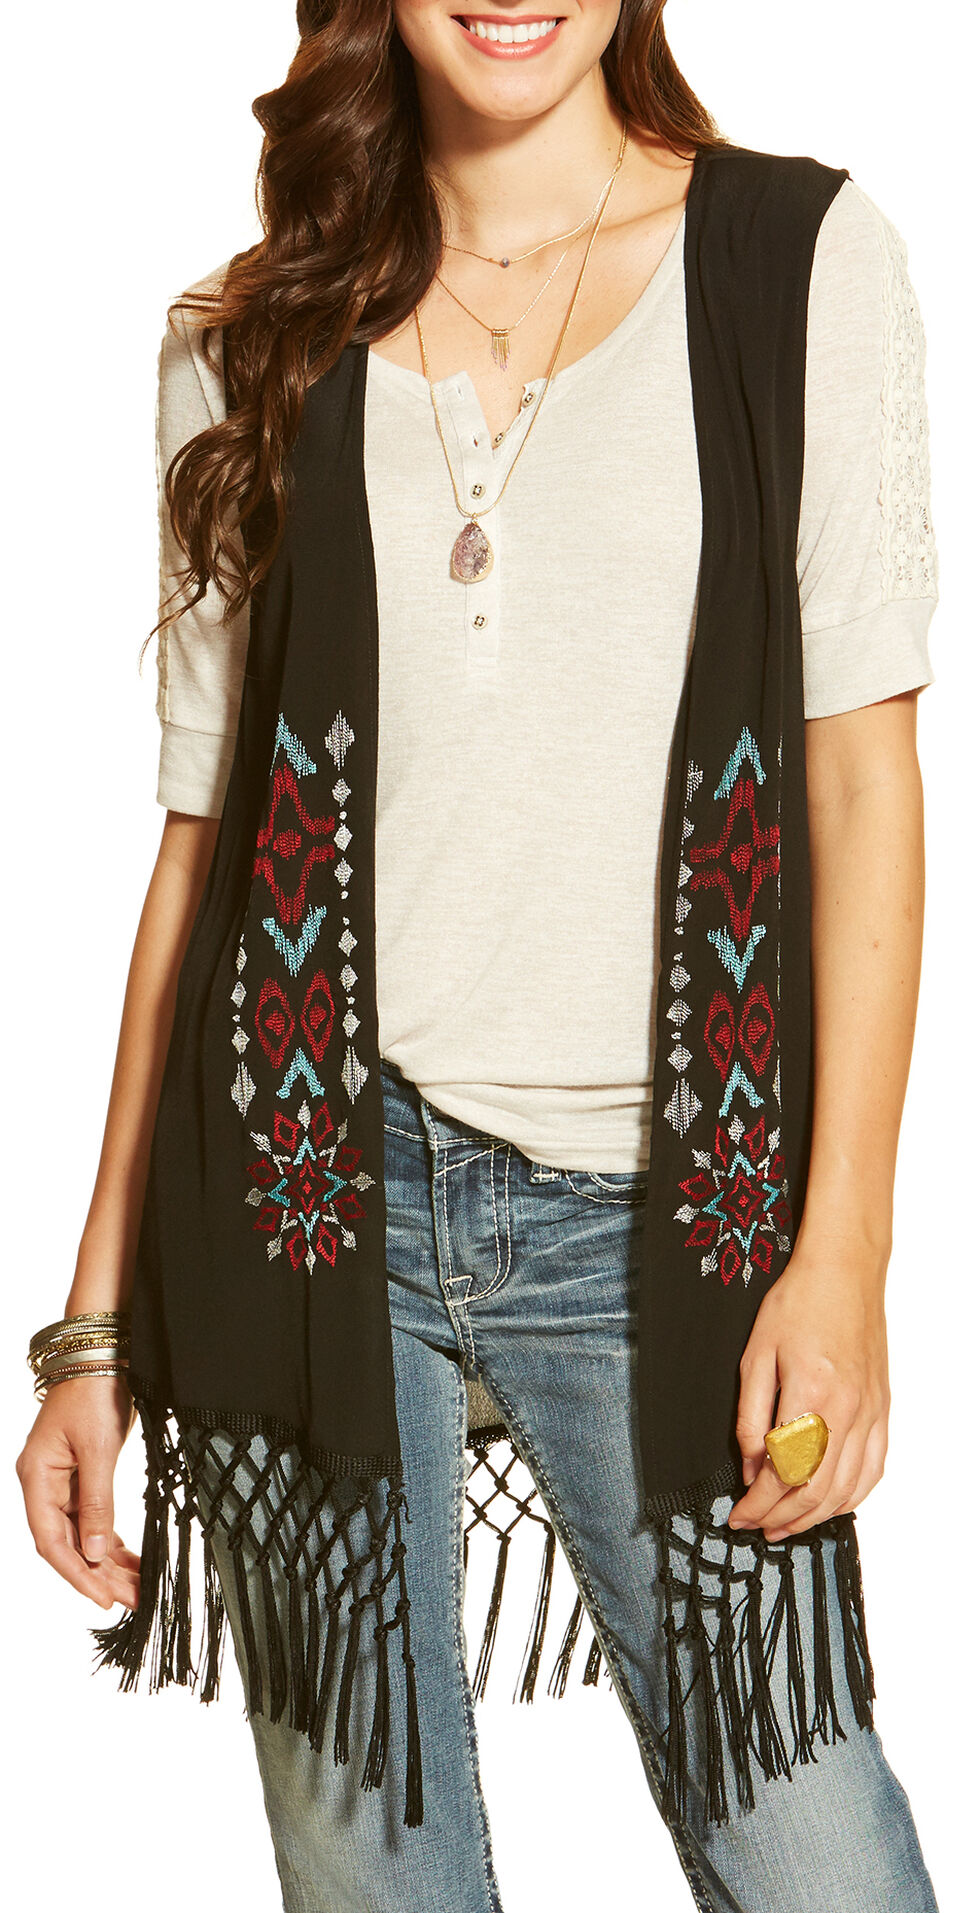 Ariat Women's Bacall Embroidered Vest, Black, hi-res